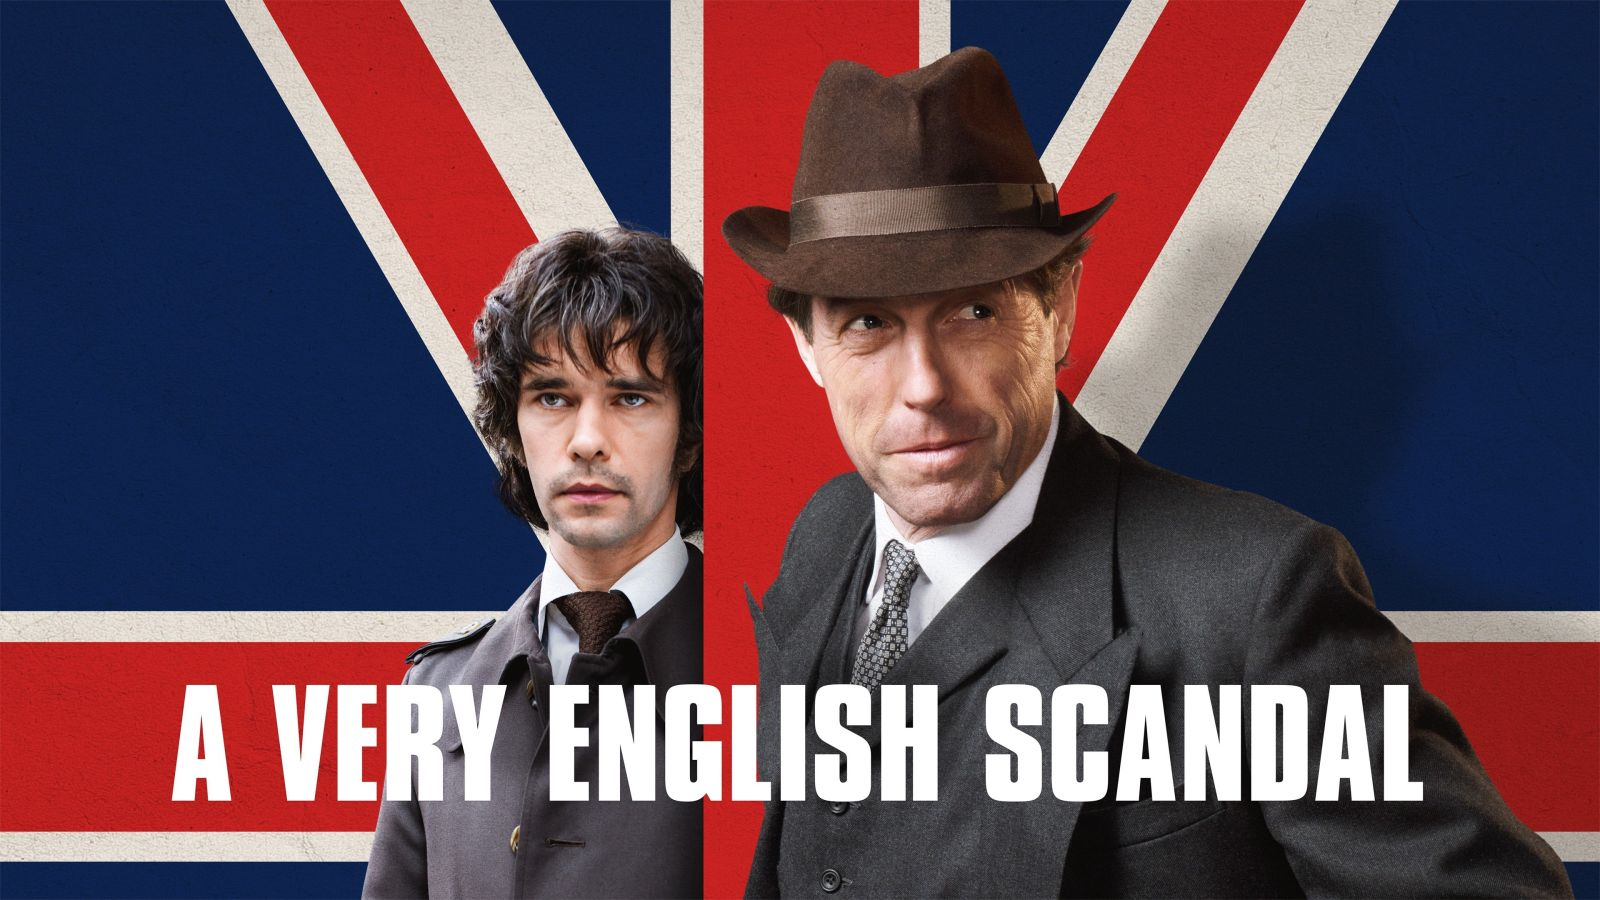 A VERY ENGLISH SCANDAL 2 with Camilla Rutherford